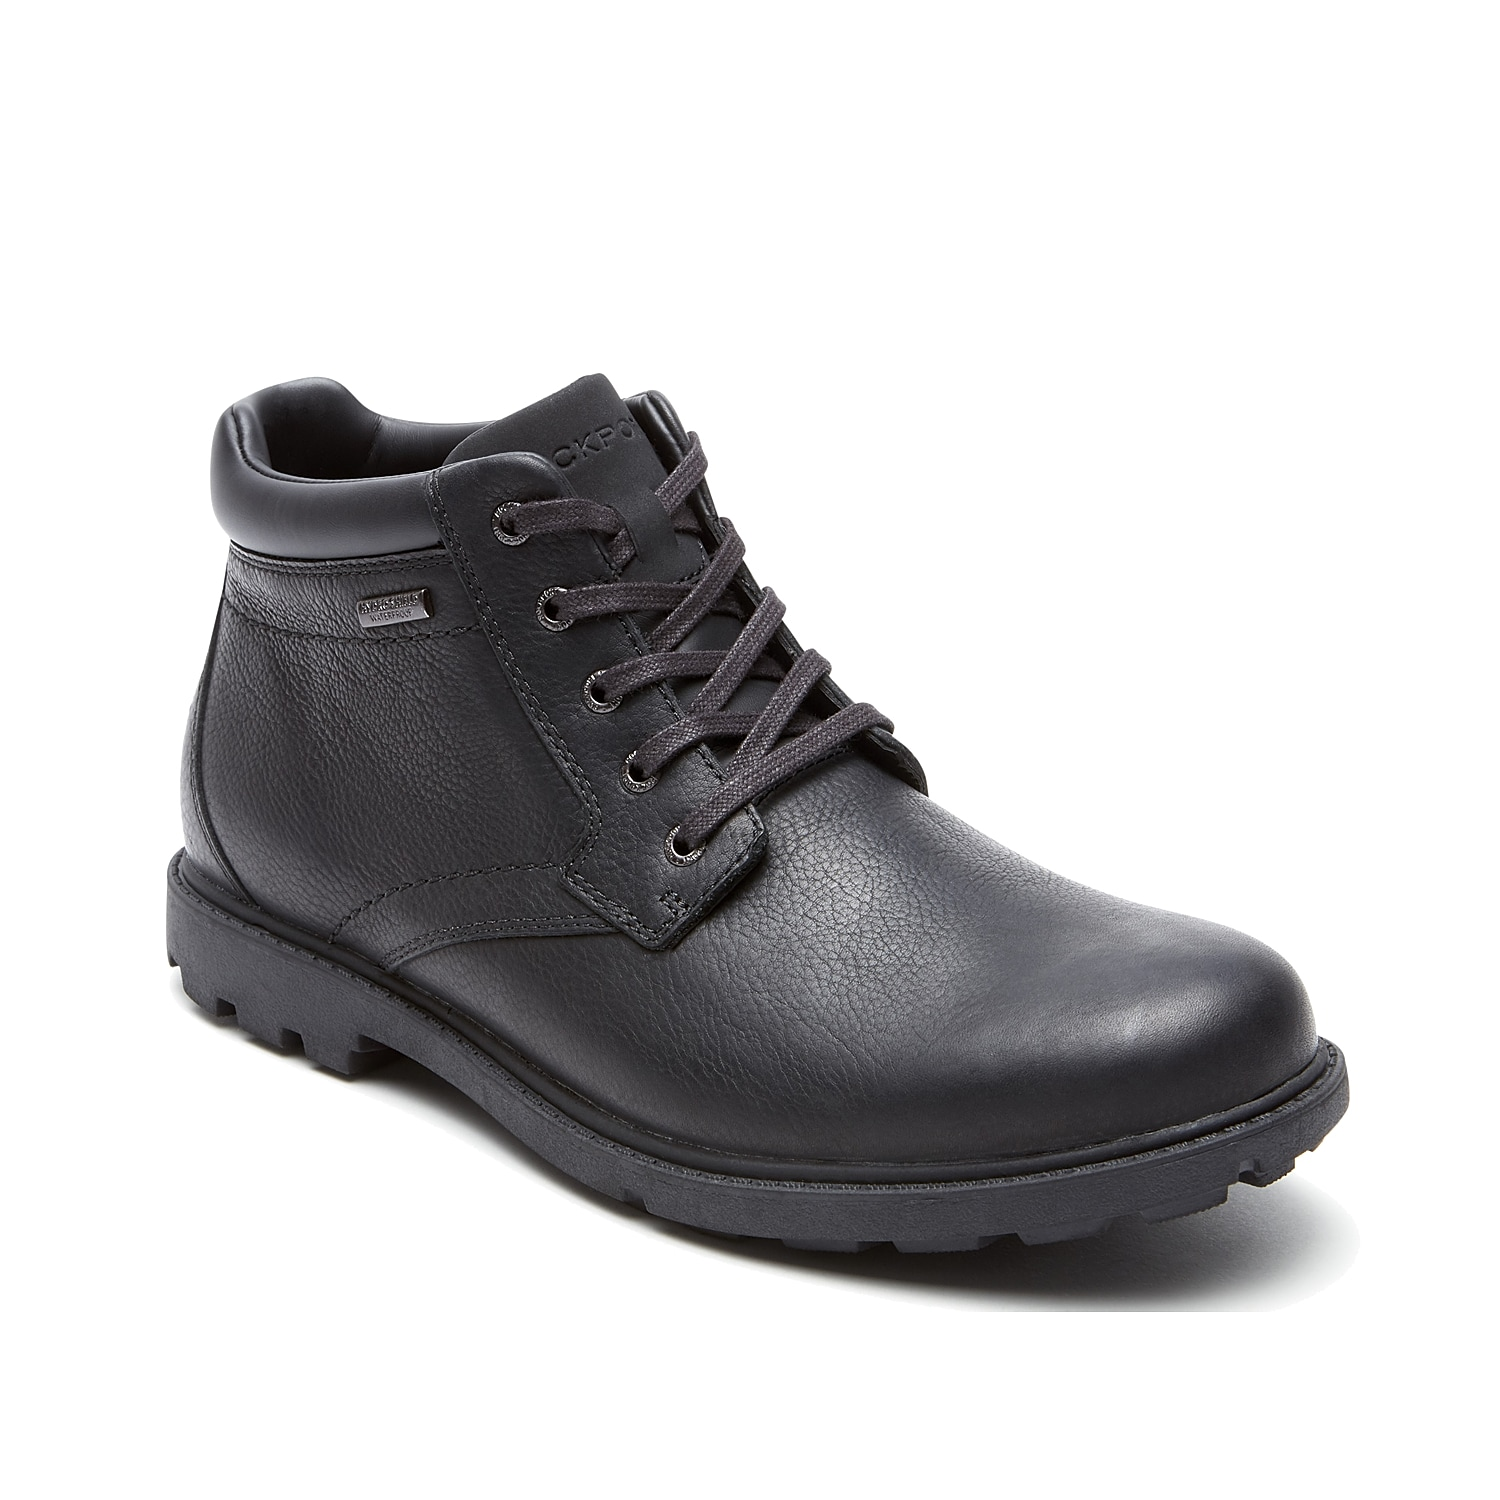 Keep your look timeless with the Storm Surge boot from Rockport. These leather lace-ups feature a waterproof finish and a slip-resistant sole to keep your safe and dry wherever you go.